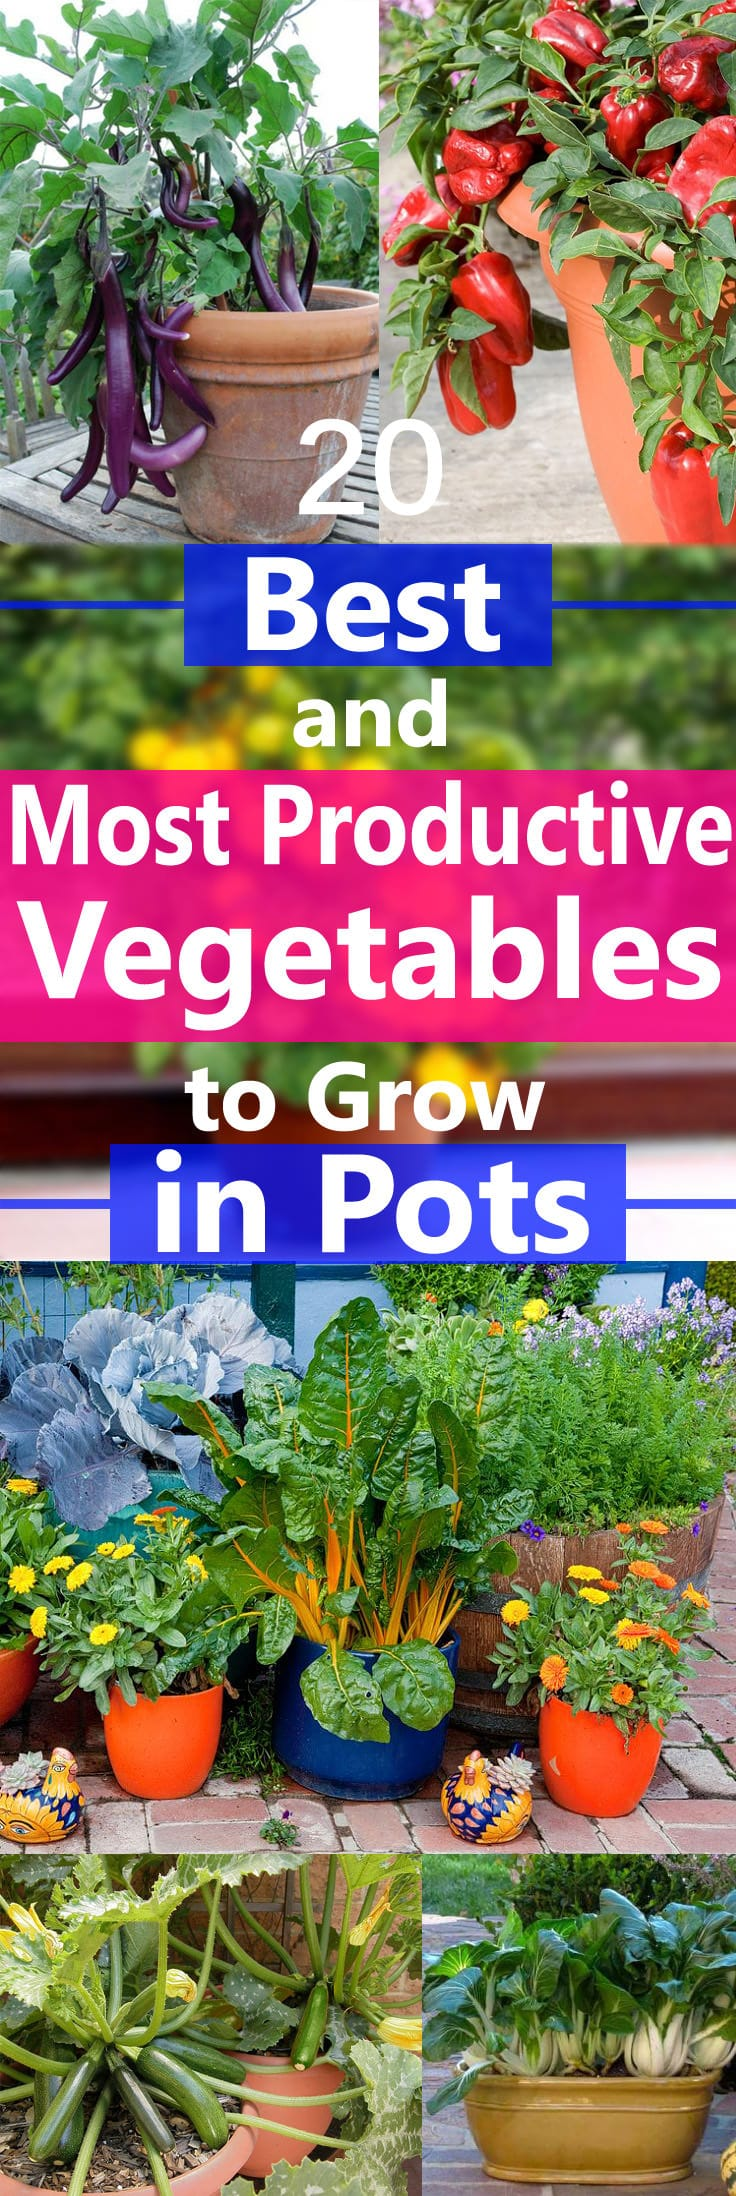 Container Growing Vegetables Best vegetables to grow in pots most productive vegetables for growing vegetables in containers is possible but there are some that grow easily and produce heavily workwithnaturefo